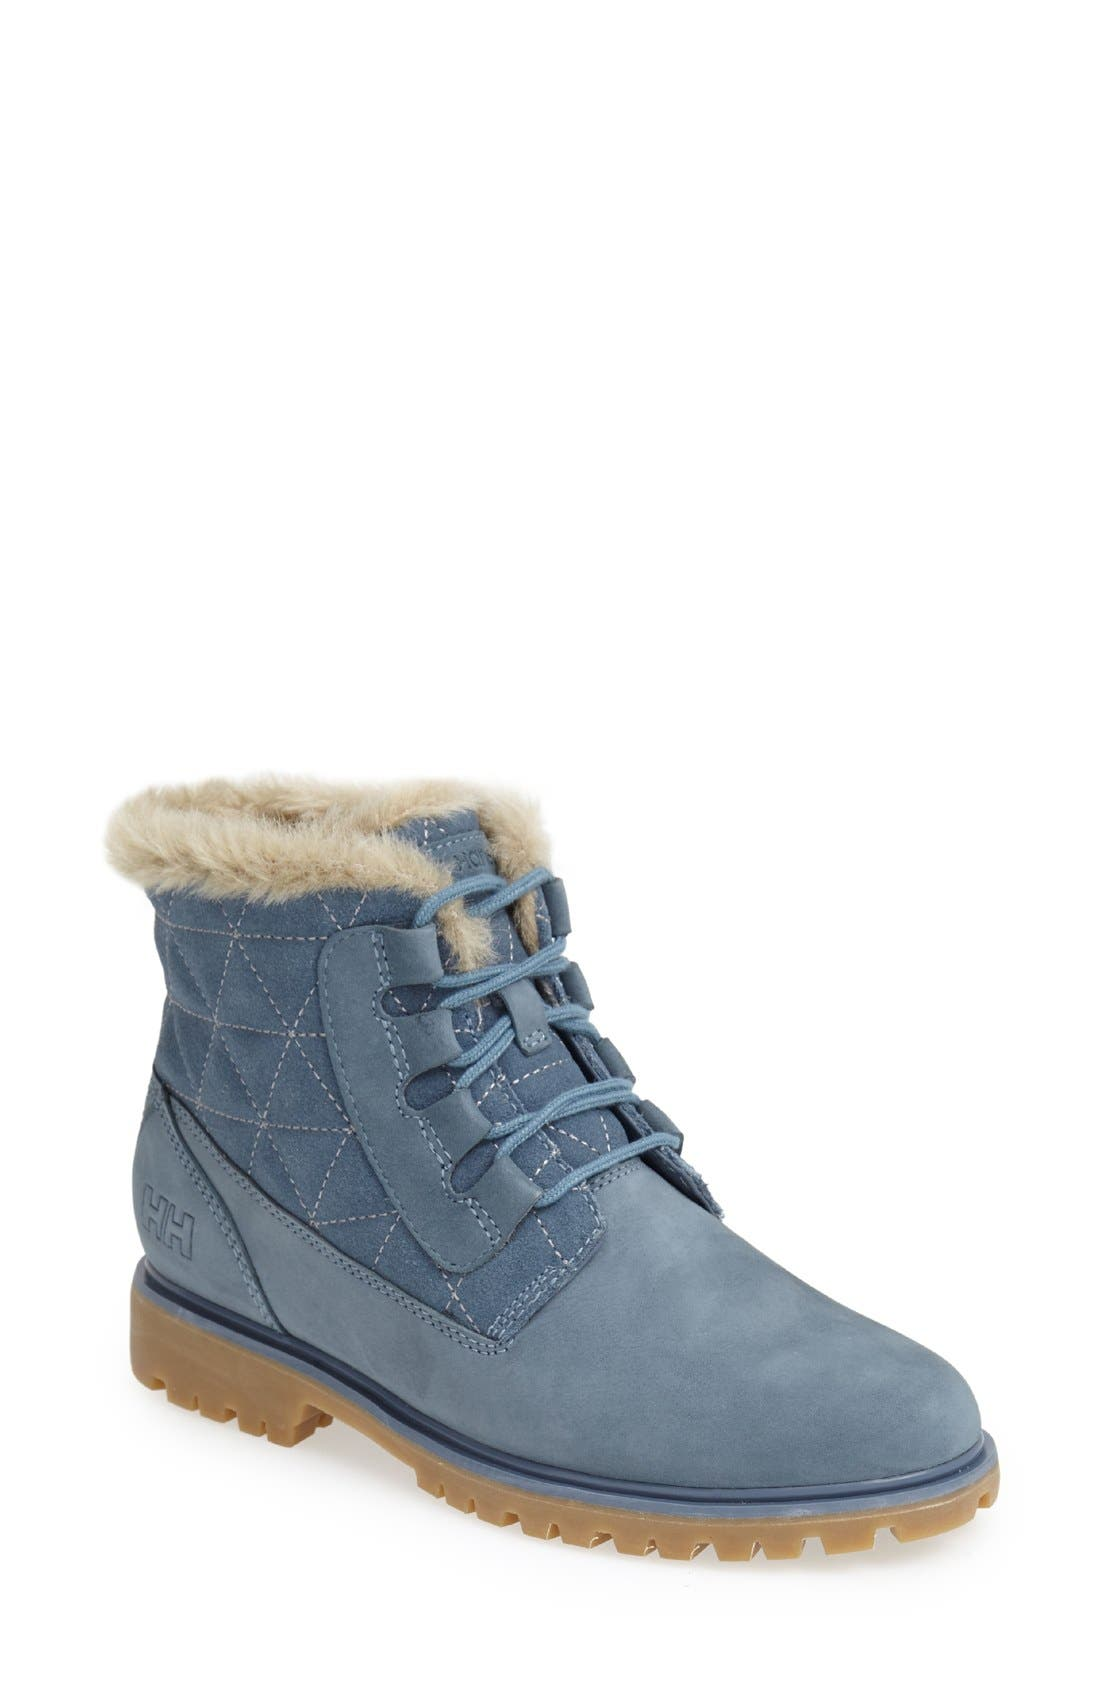 Helly Hansen 'Vega' Waterproof Leather Boot (Women)